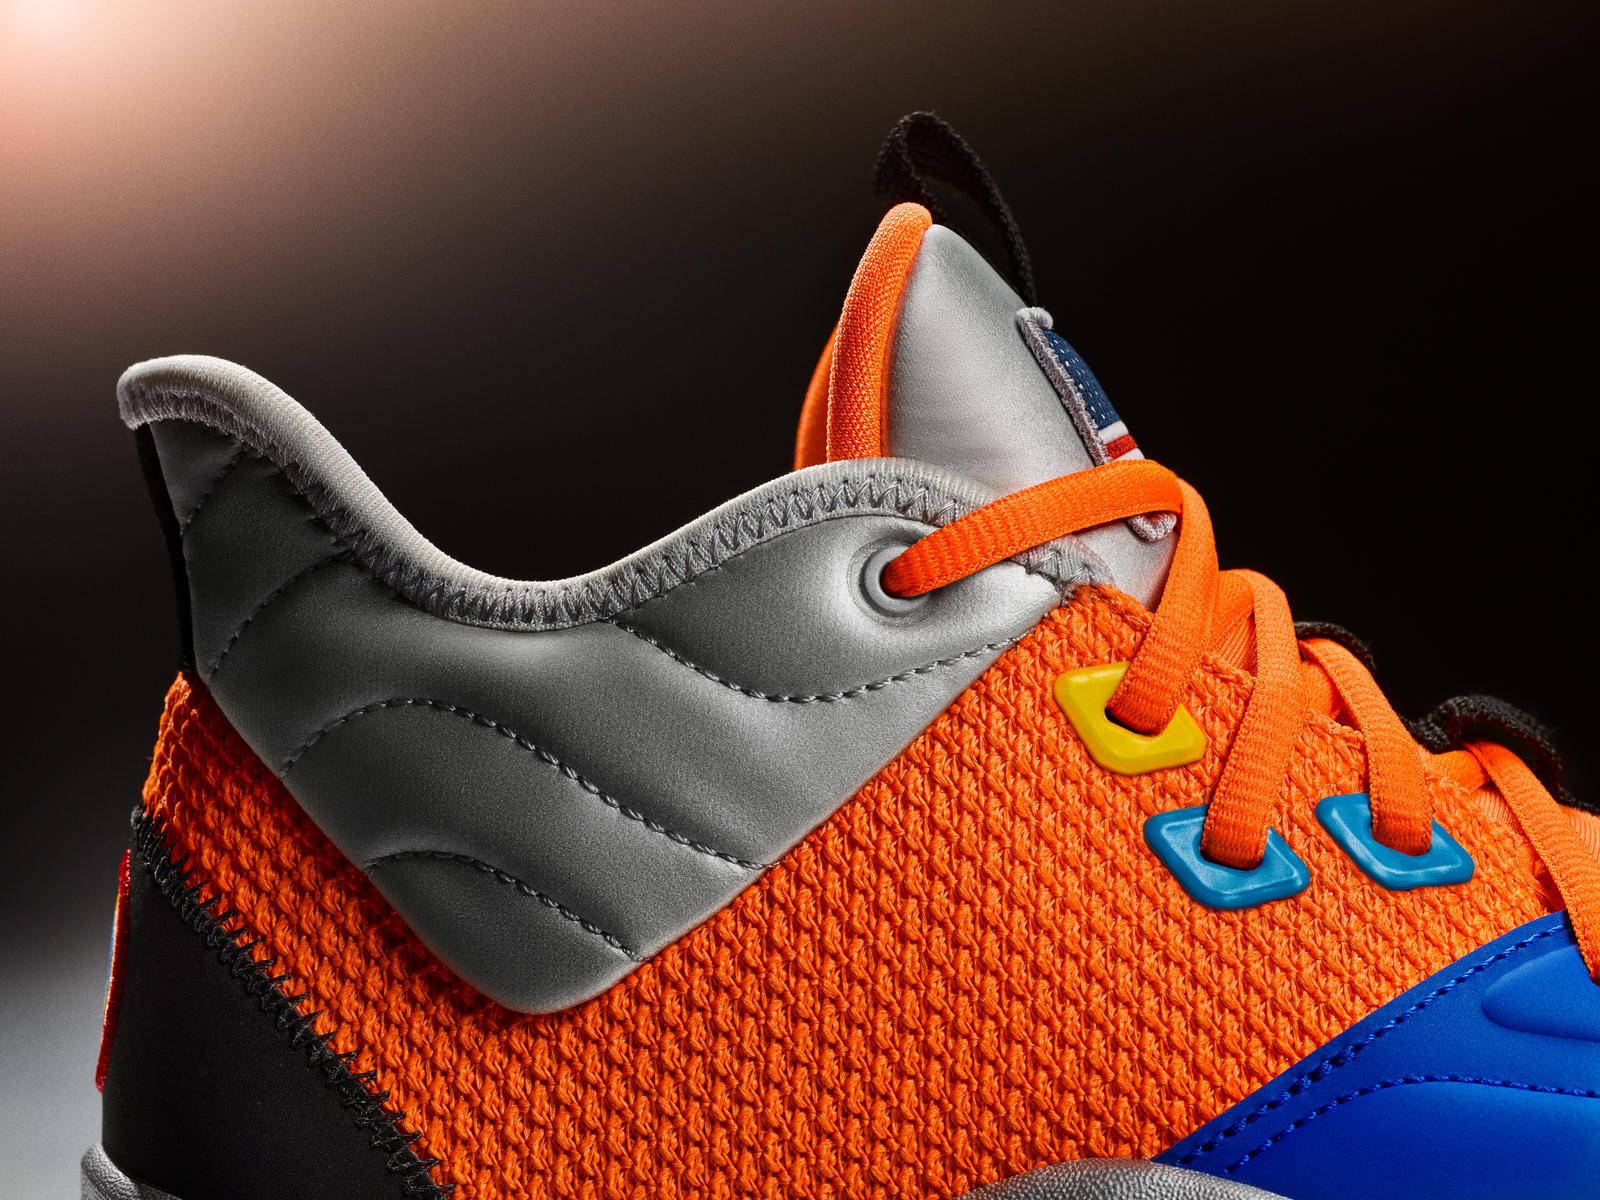 9f405821f2d1 Introducing Paul George s Third Signature Shoe